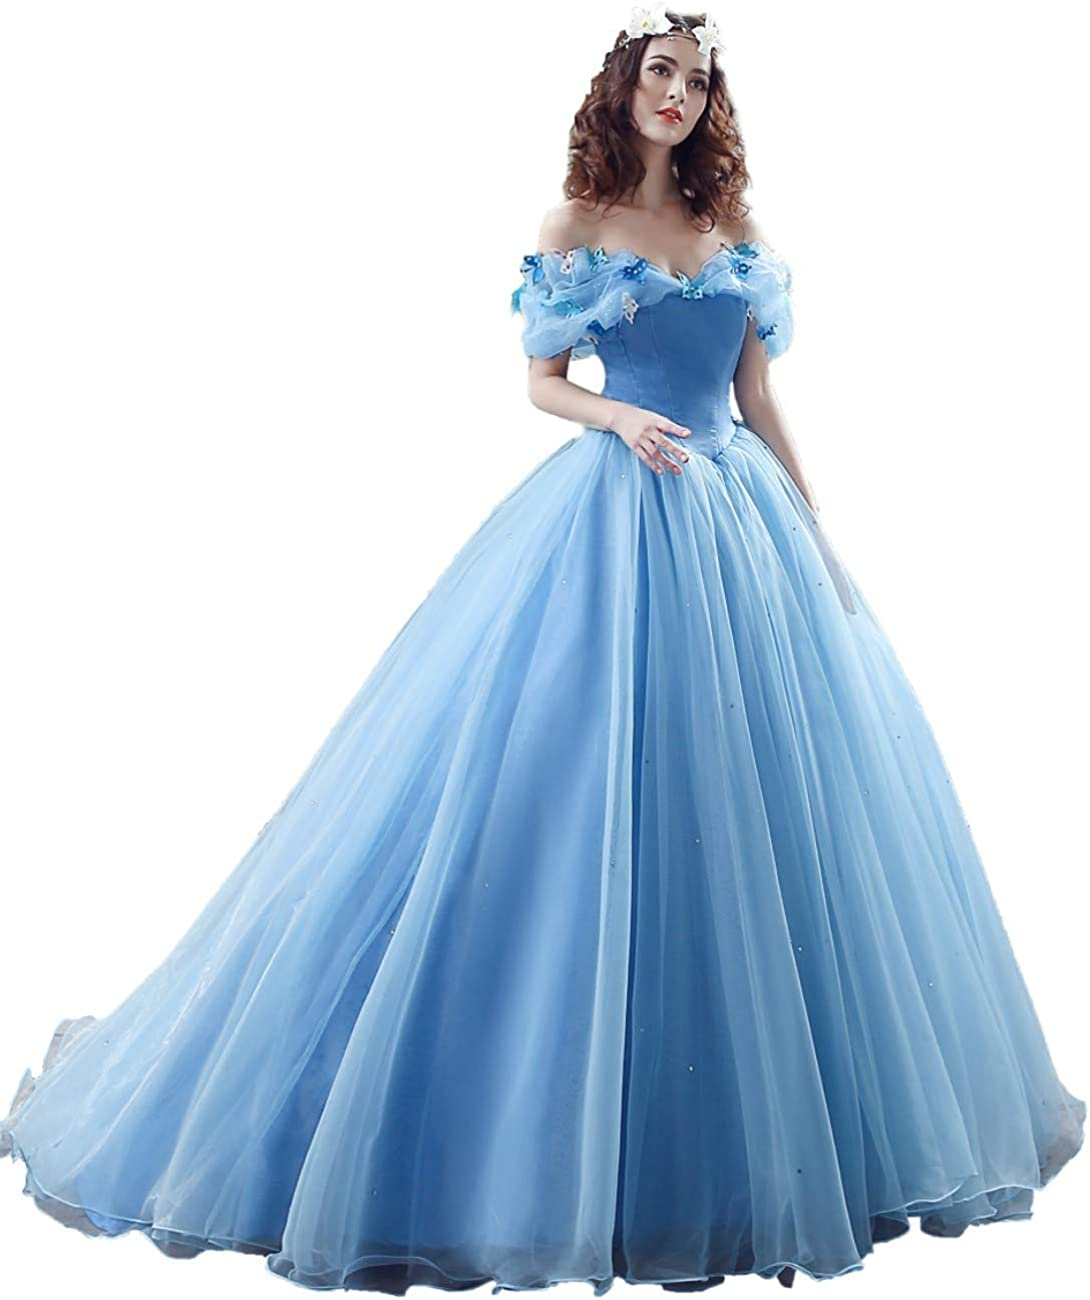 Zvocy Women S Ball Gown Cinderella Quinceanera Dresses Butterfly